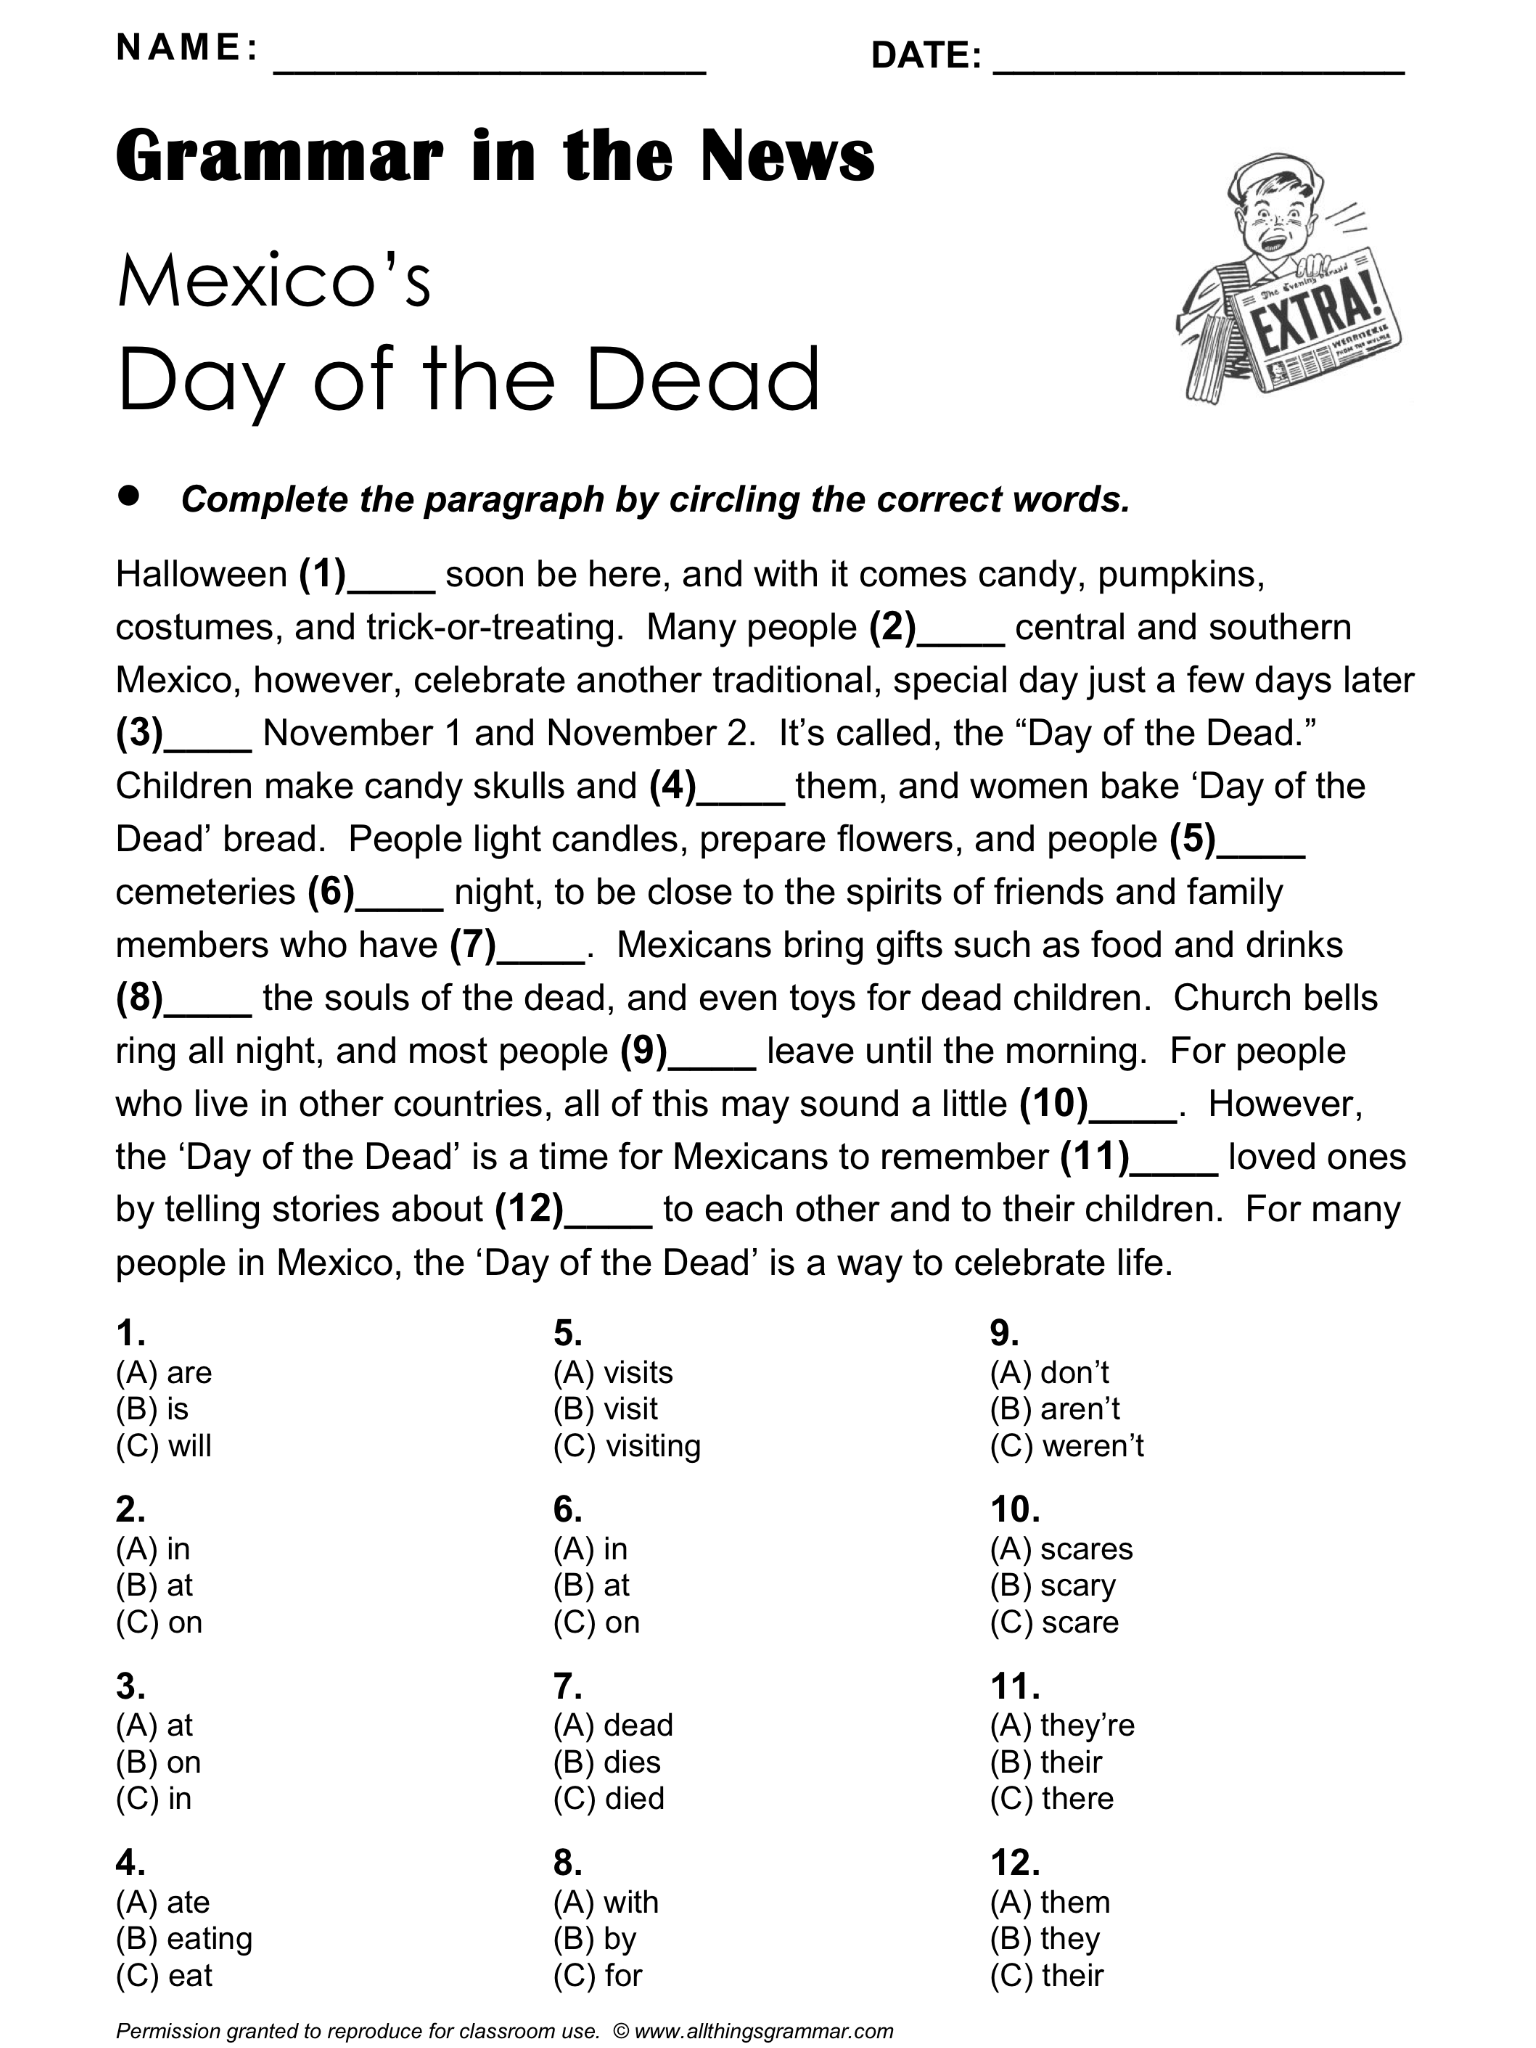 English Grammar In The News Mexico S Day Of The Dead